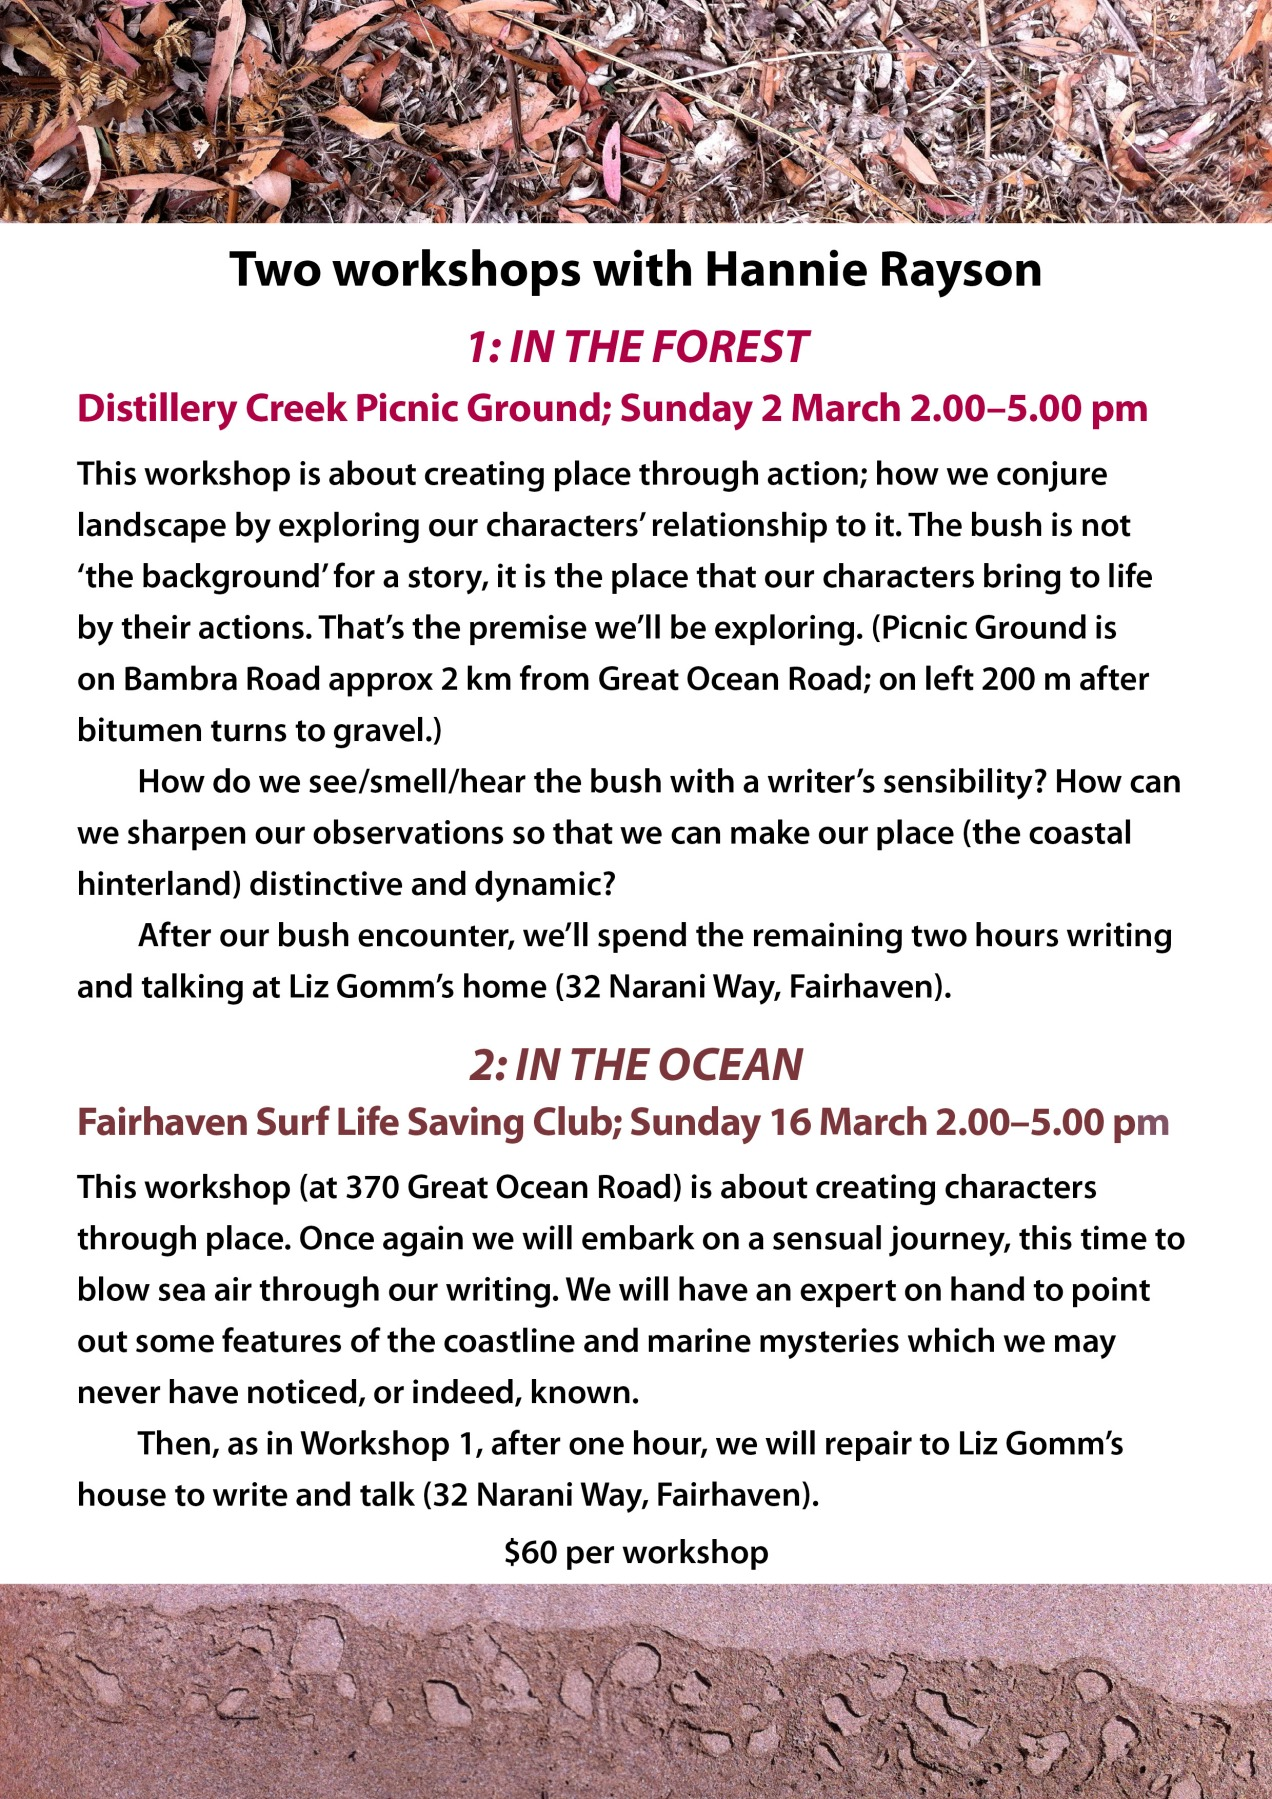 Hannie Rayson Writers Workshops: In the Forest & In the Ocean